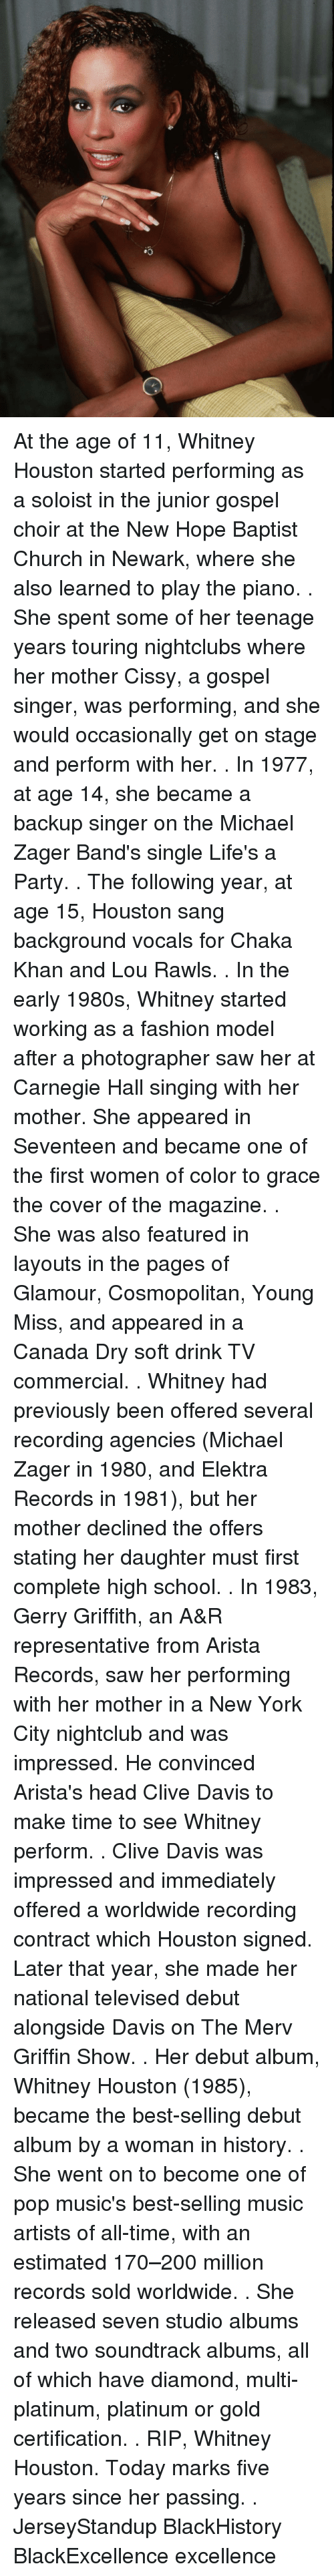 televisions: At the age of 11, Whitney Houston started performing as a soloist in the junior gospel choir at the New Hope Baptist Church in Newark, where she also learned to play the piano. . She spent some of her teenage years touring nightclubs where her mother Cissy, a gospel singer, was performing, and she would occasionally get on stage and perform with her. . In 1977, at age 14, she became a backup singer on the Michael Zager Band's single Life's a Party. . The following year, at age 15, Houston sang background vocals for Chaka Khan and Lou Rawls. . In the early 1980s, Whitney started working as a fashion model after a photographer saw her at Carnegie Hall singing with her mother. She appeared in Seventeen and became one of the first women of color to grace the cover of the magazine. . She was also featured in layouts in the pages of Glamour, Cosmopolitan, Young Miss, and appeared in a Canada Dry soft drink TV commercial. . Whitney had previously been offered several recording agencies (Michael Zager in 1980, and Elektra Records in 1981), but her mother declined the offers stating her daughter must first complete high school. . In 1983, Gerry Griffith, an A&R representative from Arista Records, saw her performing with her mother in a New York City nightclub and was impressed. He convinced Arista's head Clive Davis to make time to see Whitney perform. . Clive Davis was impressed and immediately offered a worldwide recording contract which Houston signed. Later that year, she made her national televised debut alongside Davis on The Merv Griffin Show. . Her debut album, Whitney Houston (1985), became the best-selling debut album by a woman in history. . She went on to become one of pop music's best-selling music artists of all-time, with an estimated 170–200 million records sold worldwide. . She released seven studio albums and two soundtrack albums, all of which have diamond, multi-platinum, platinum or gold certification. . RIP, Whitney Houston. Today marks fiv